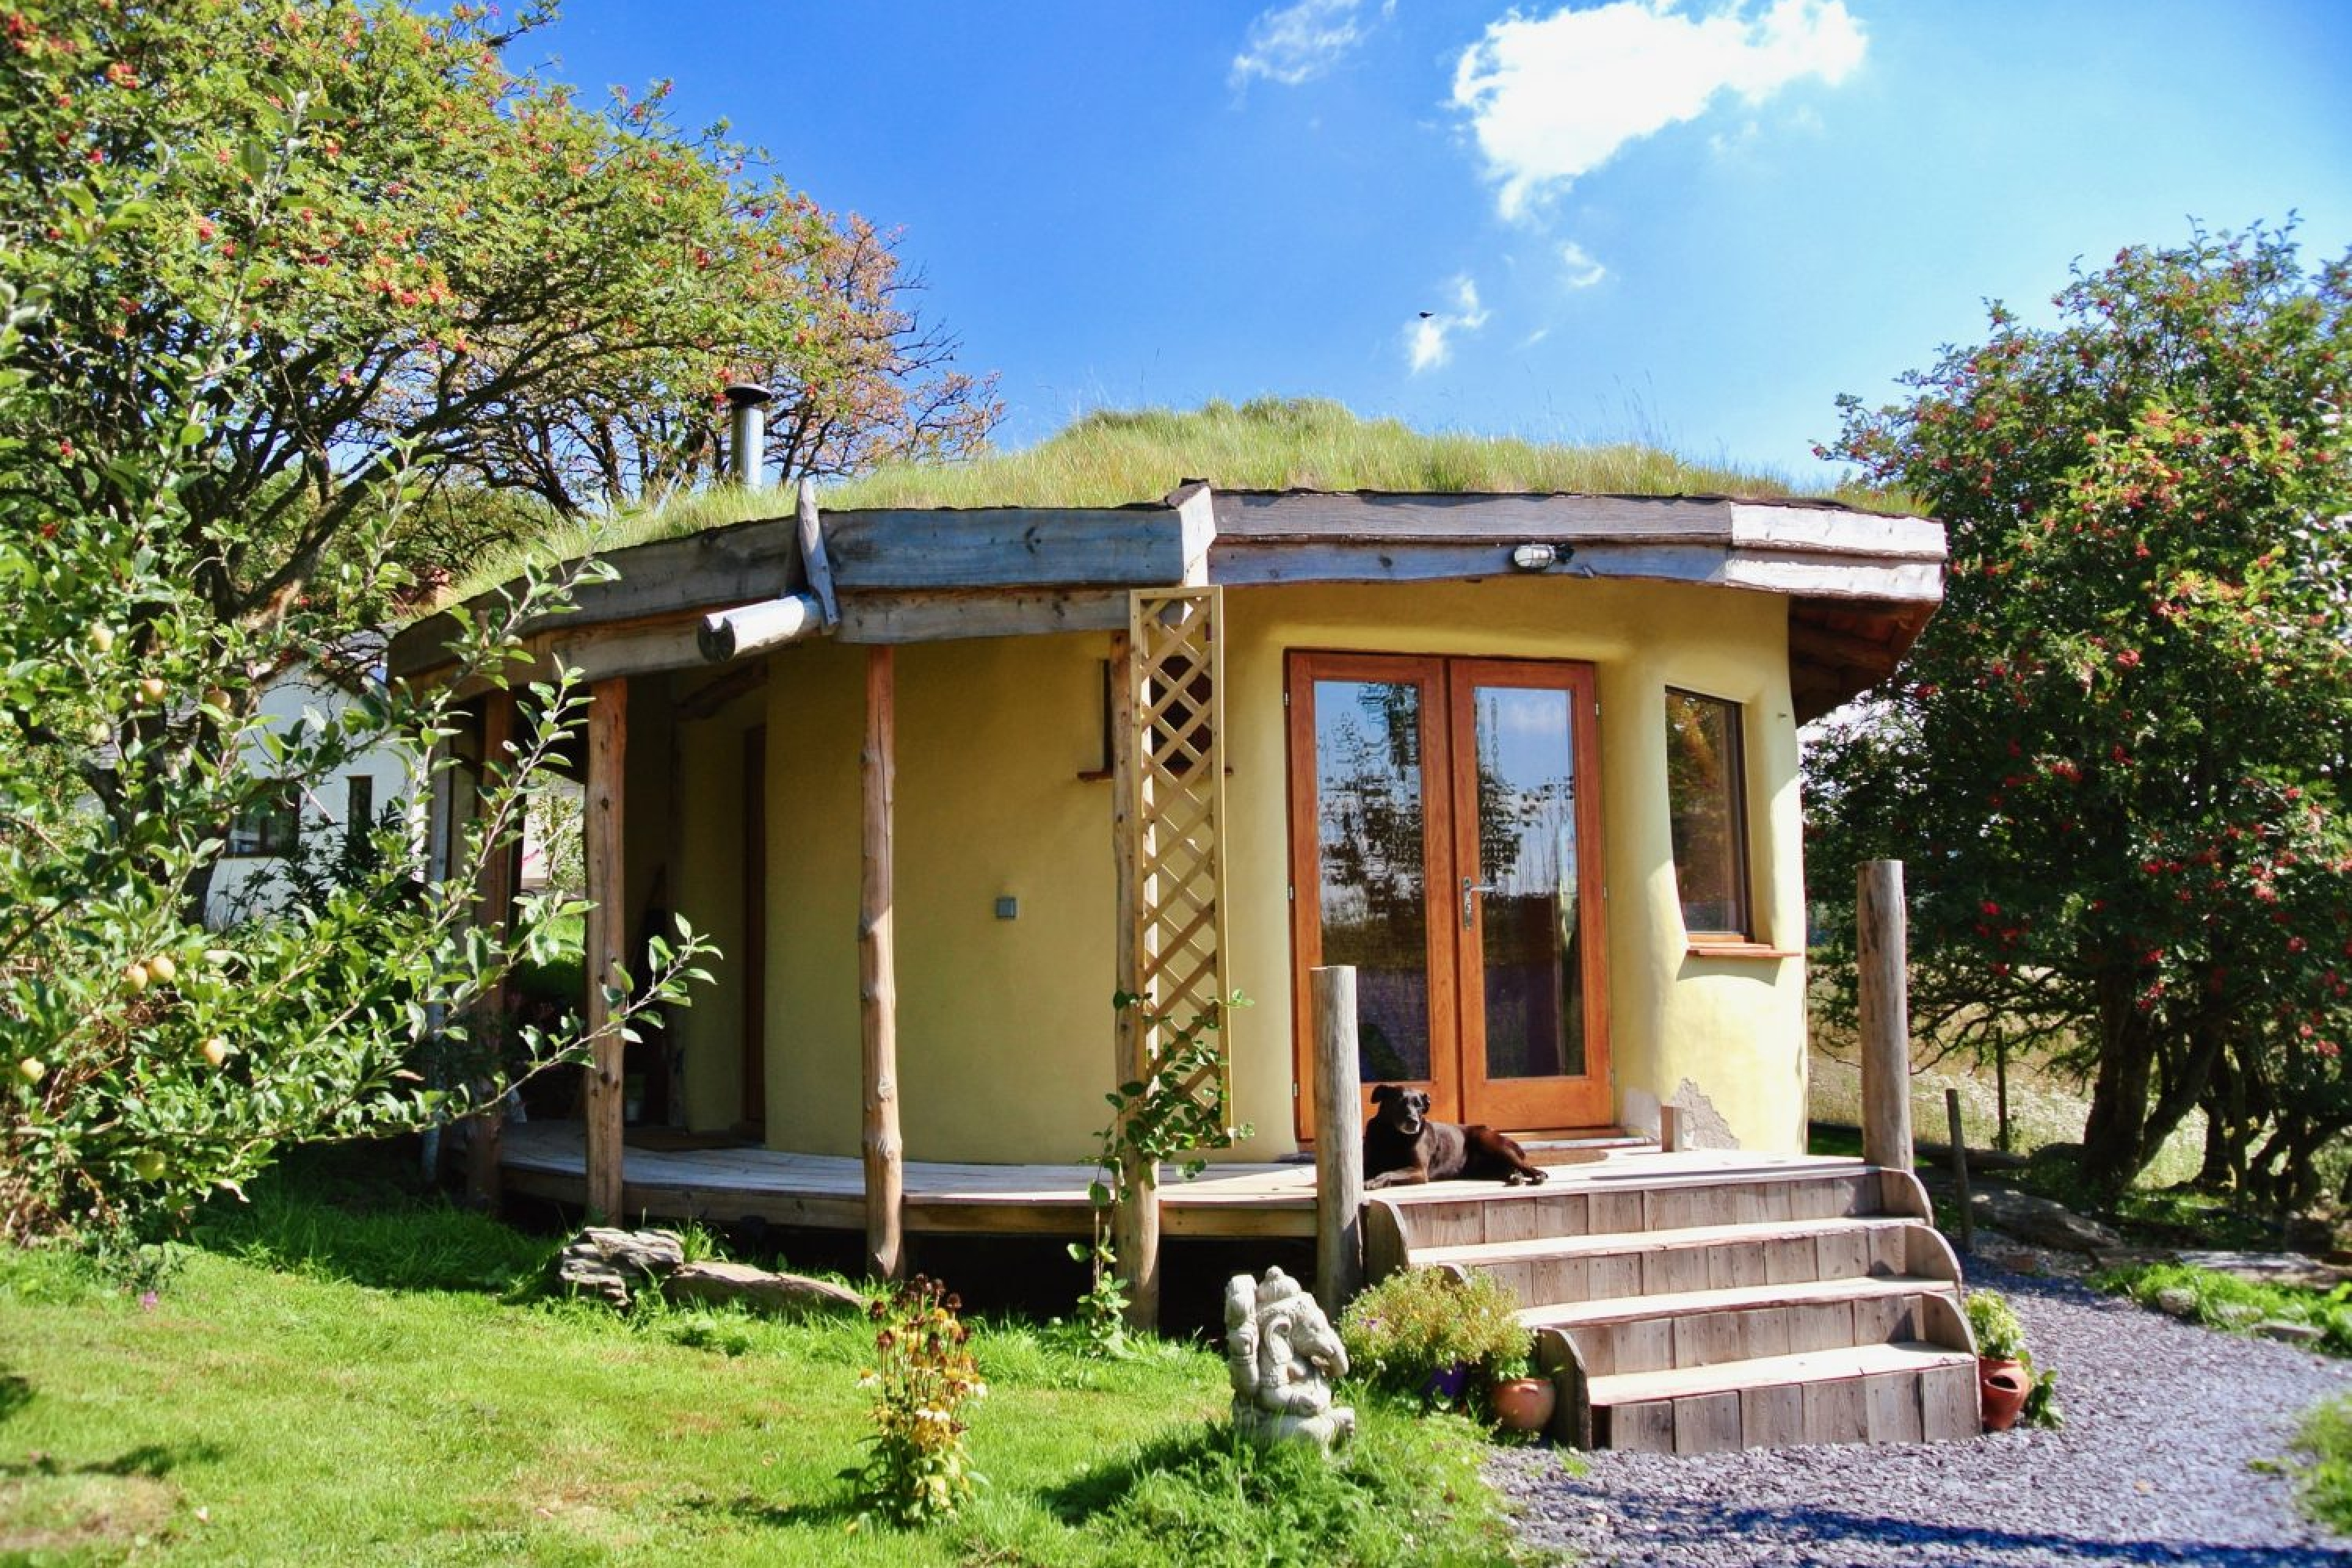 Straw bale roundhouse at intimate off grid eco retreat centre Ty Mam Mawr in North Wales